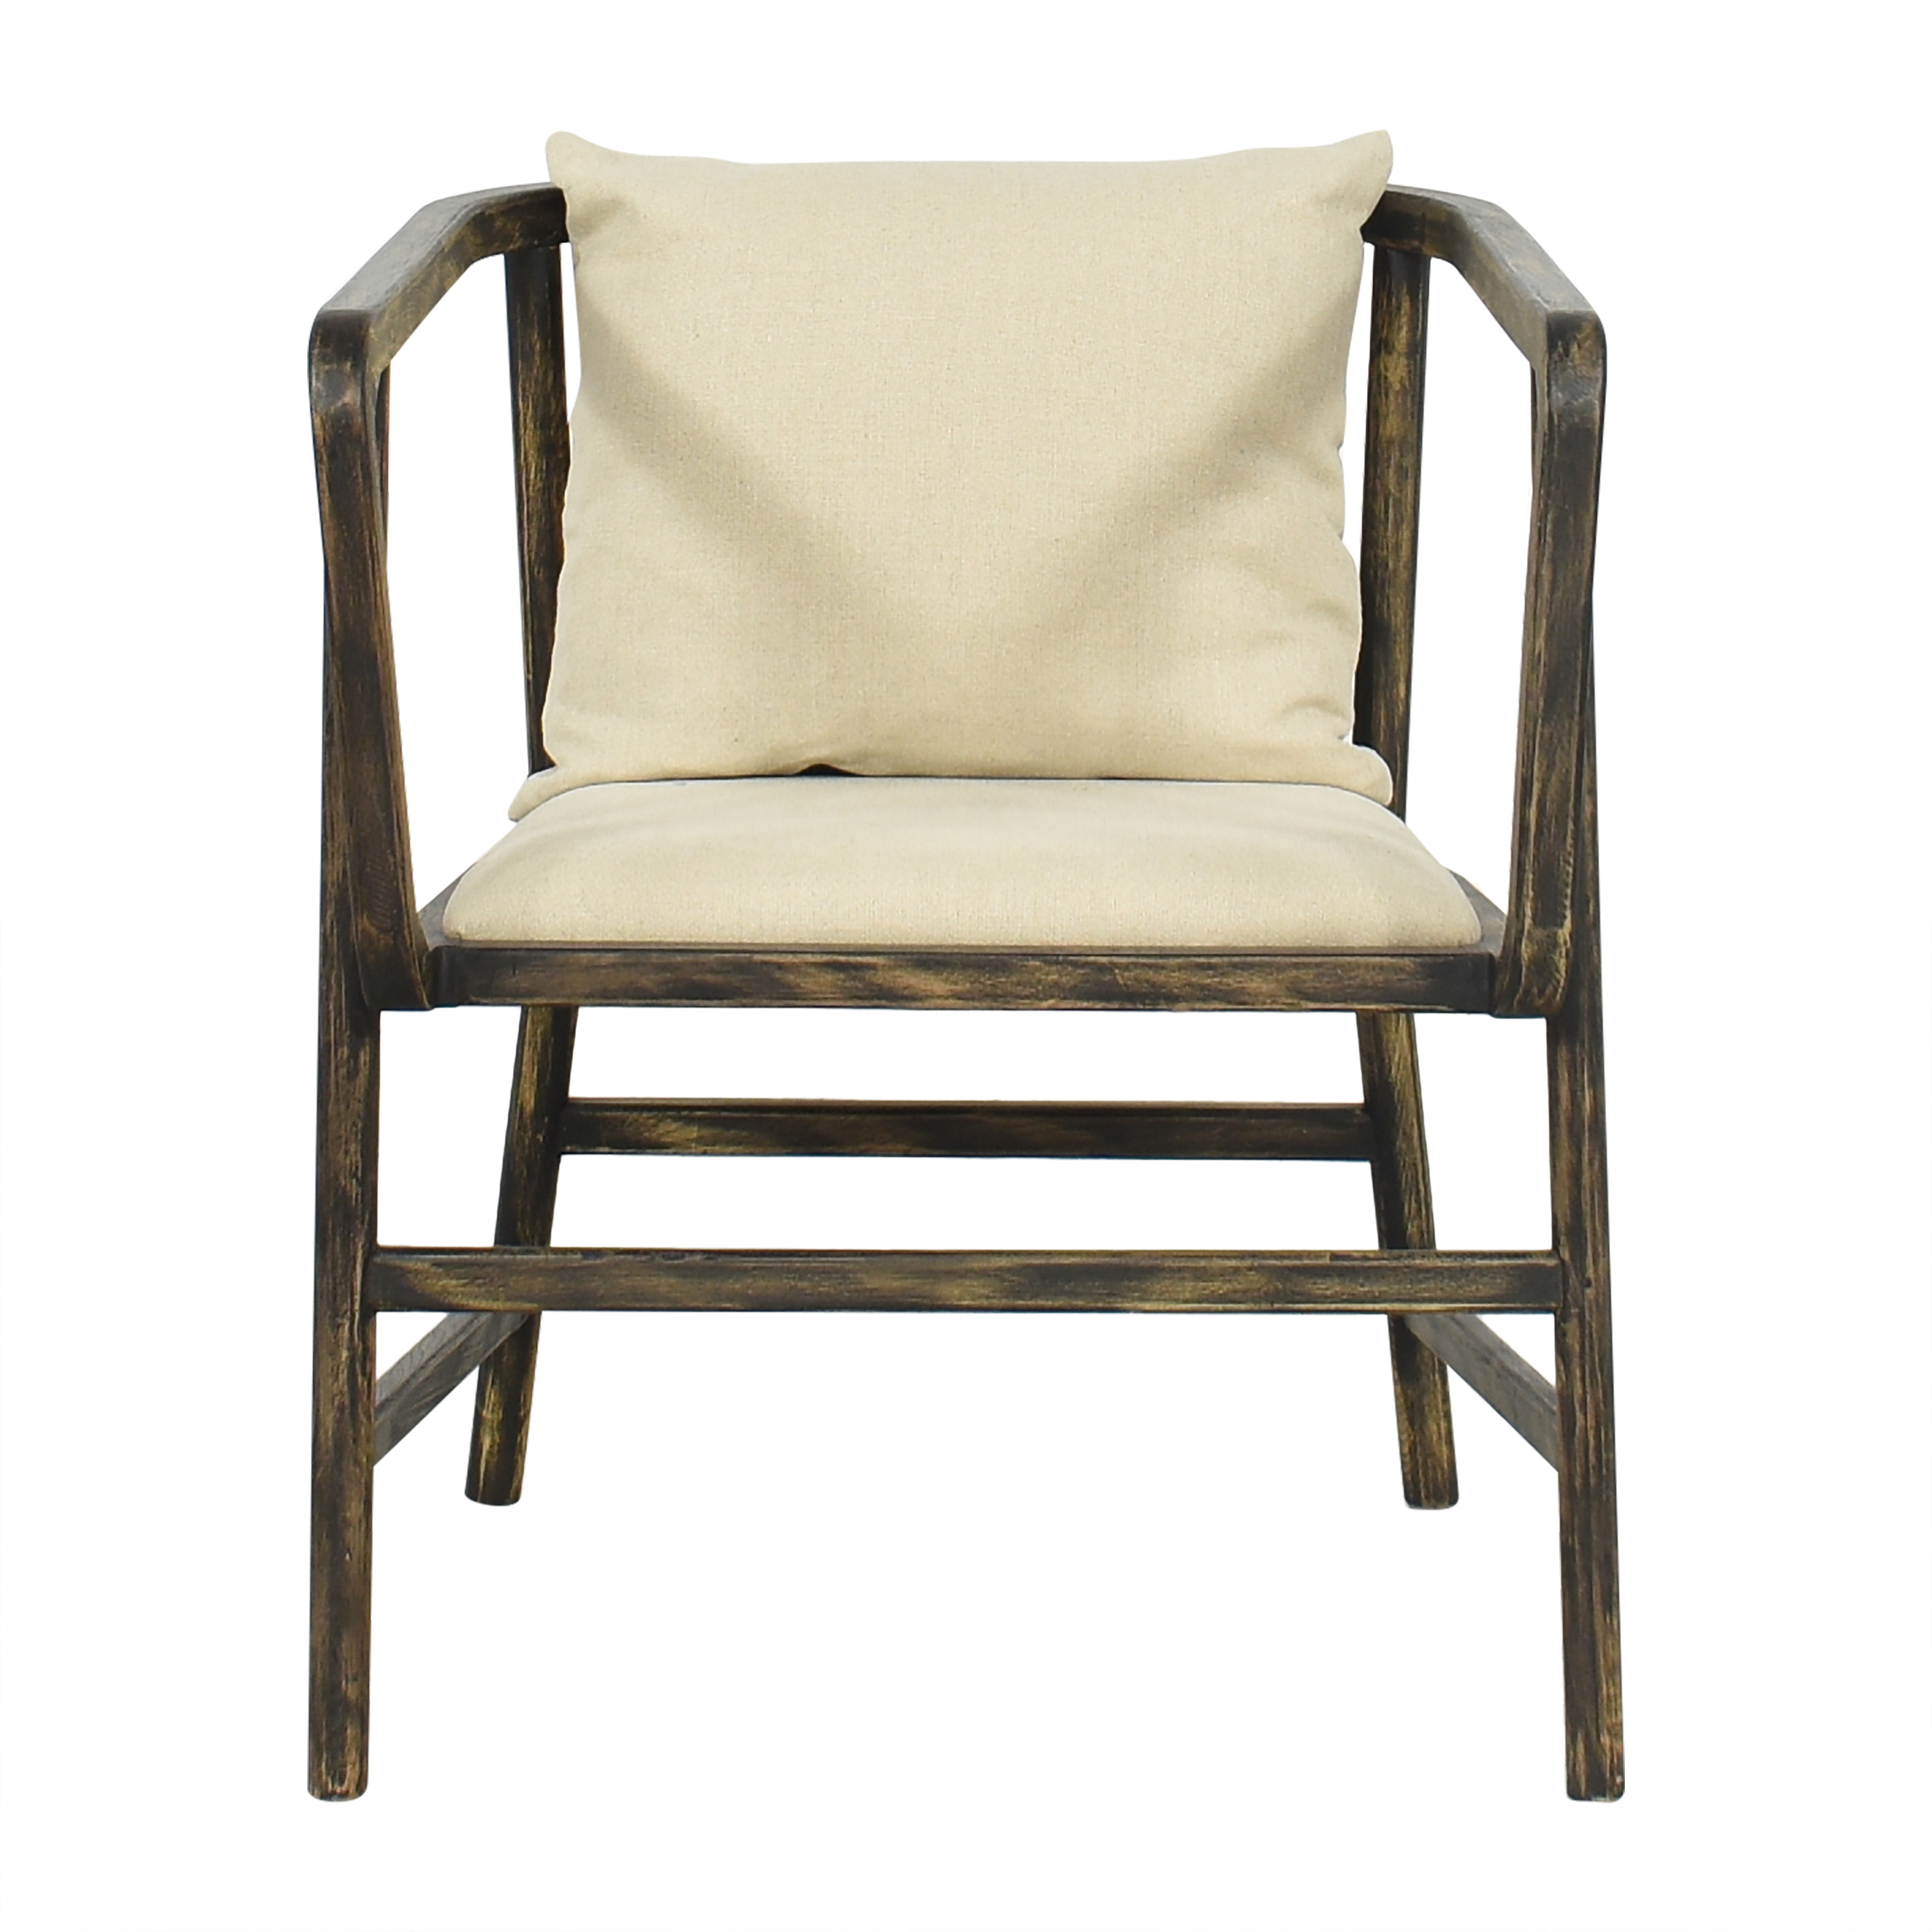 Four Hands Four Hands Frasier Lounge Chair dimensions